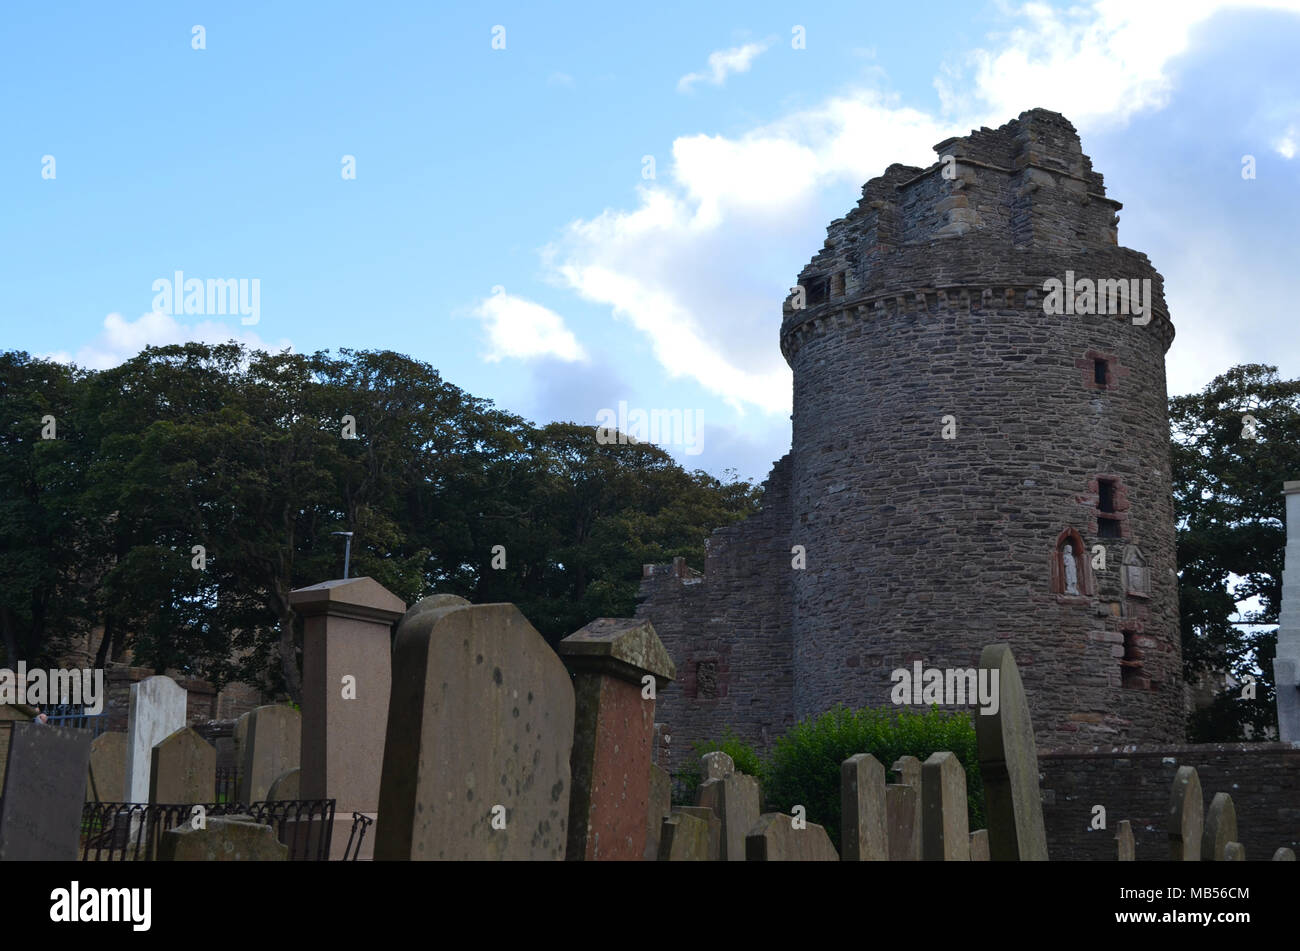 Ruins of the Bishop's Palace and cemetery at Saint Magnus cathedral, Kirkwall, Orkney Islands - Stock Image